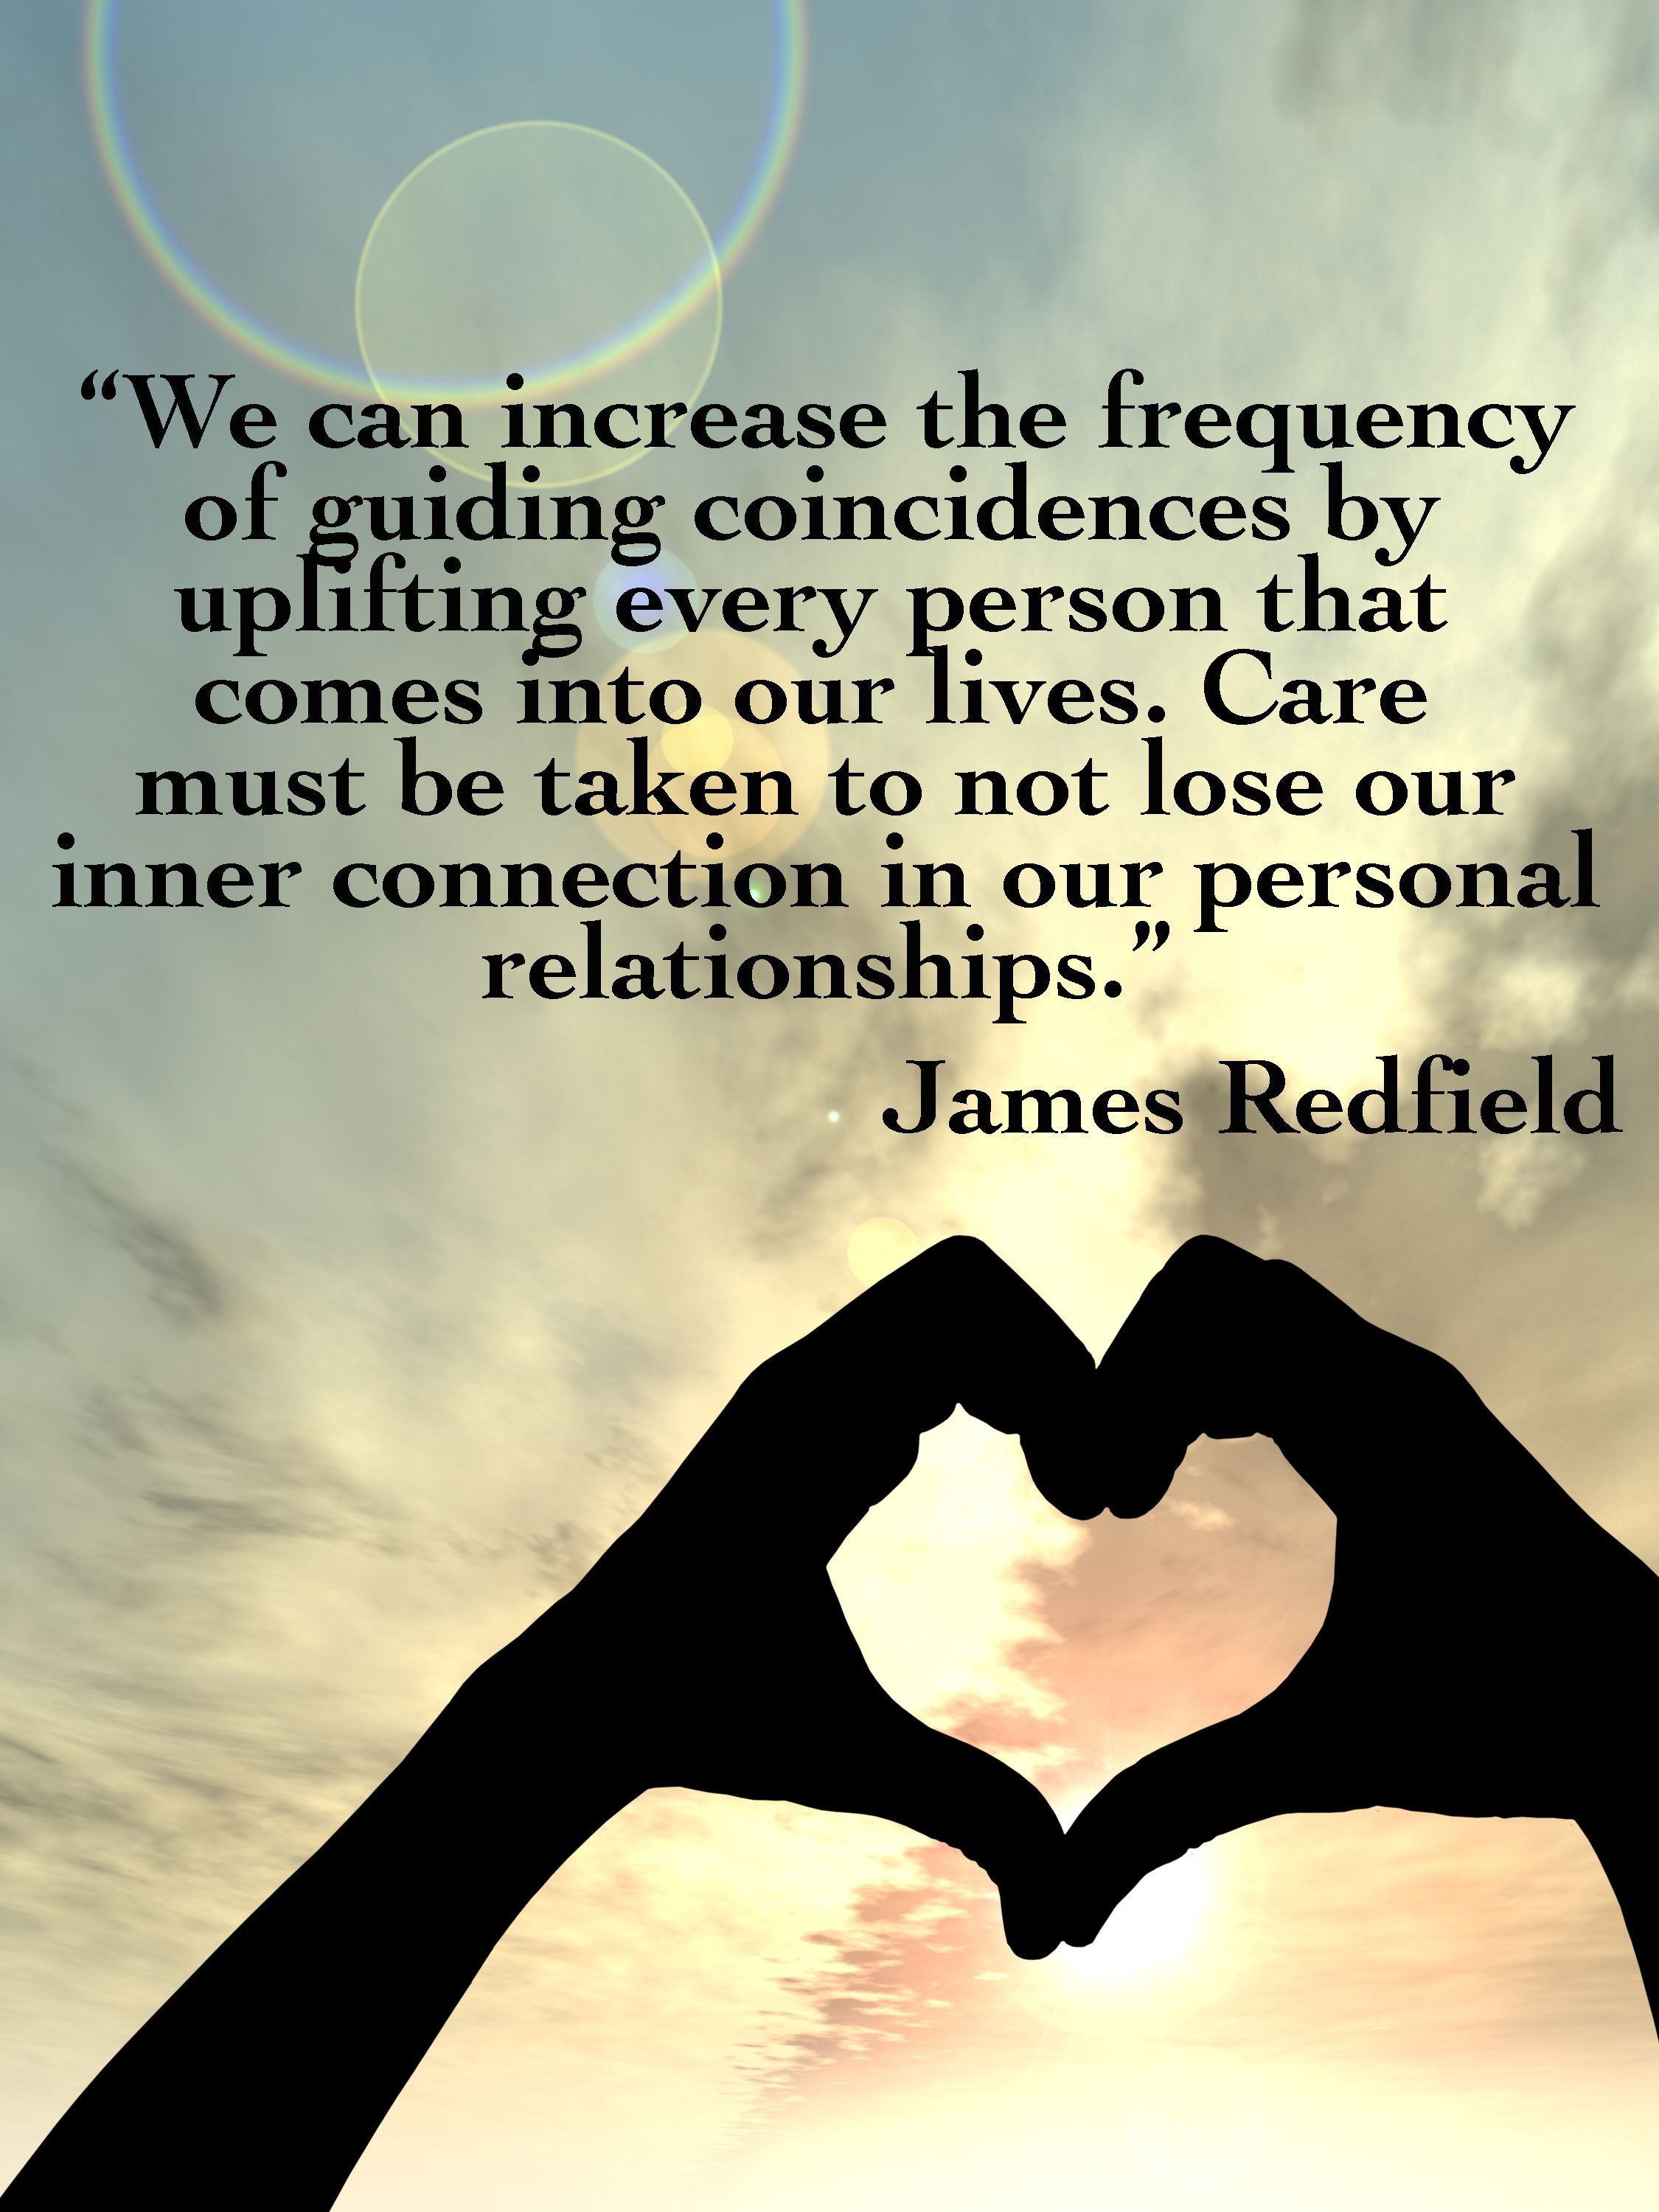 Spiritual Motivational Quotes Inspirational And Spiritual Quotesjames Redfield  Celestine